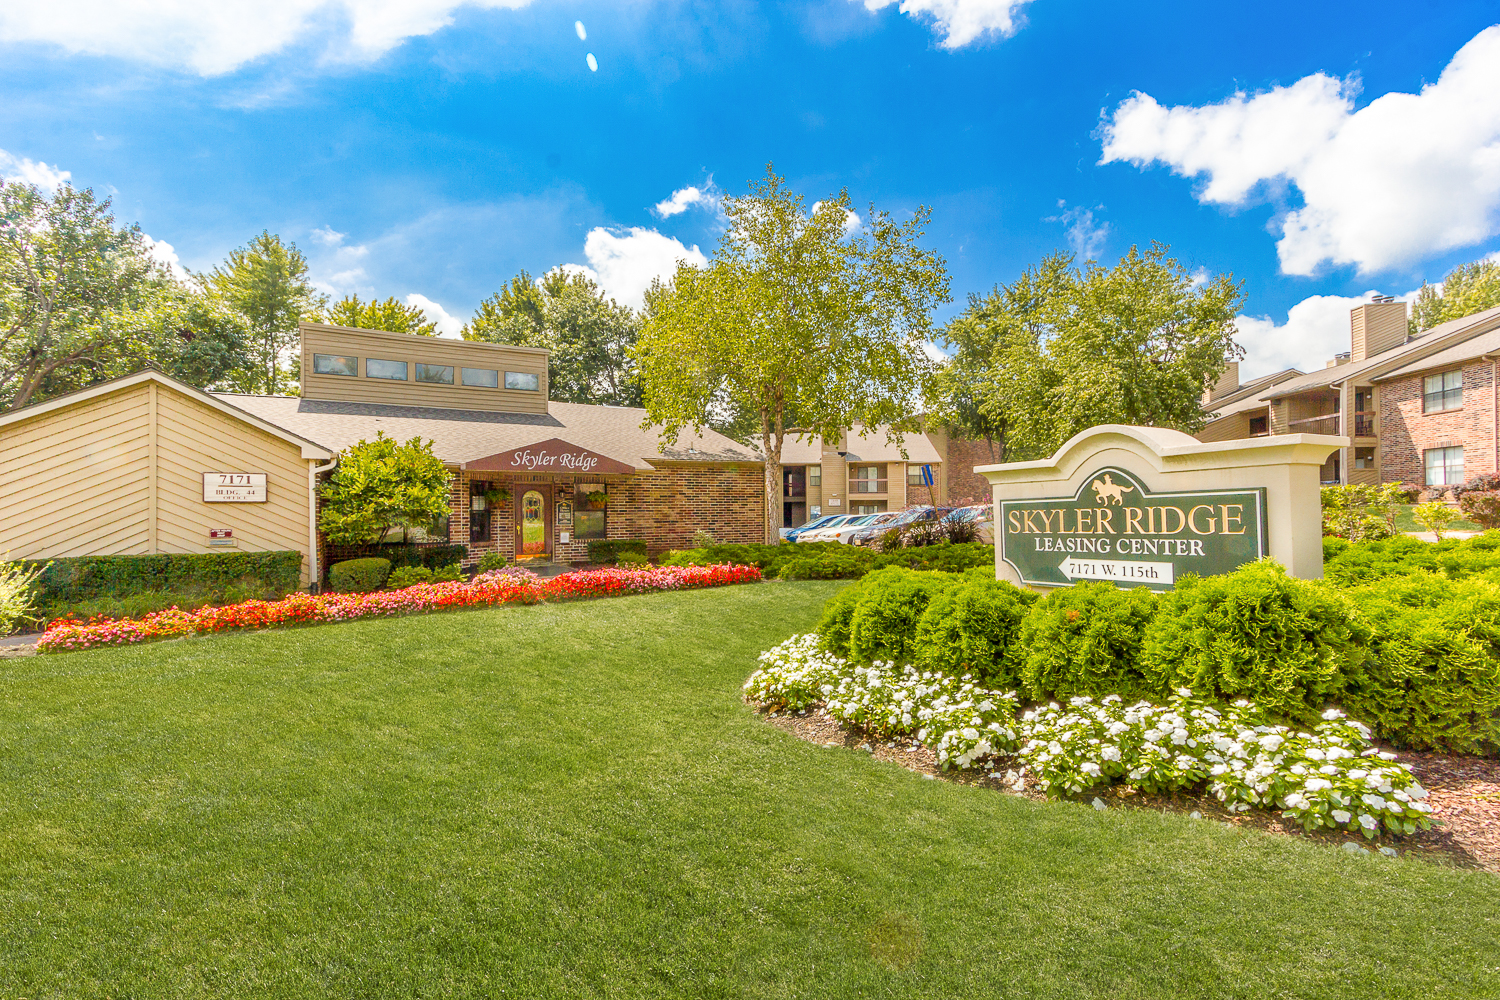 Apartments With Paid Utilities Overland Park Ks